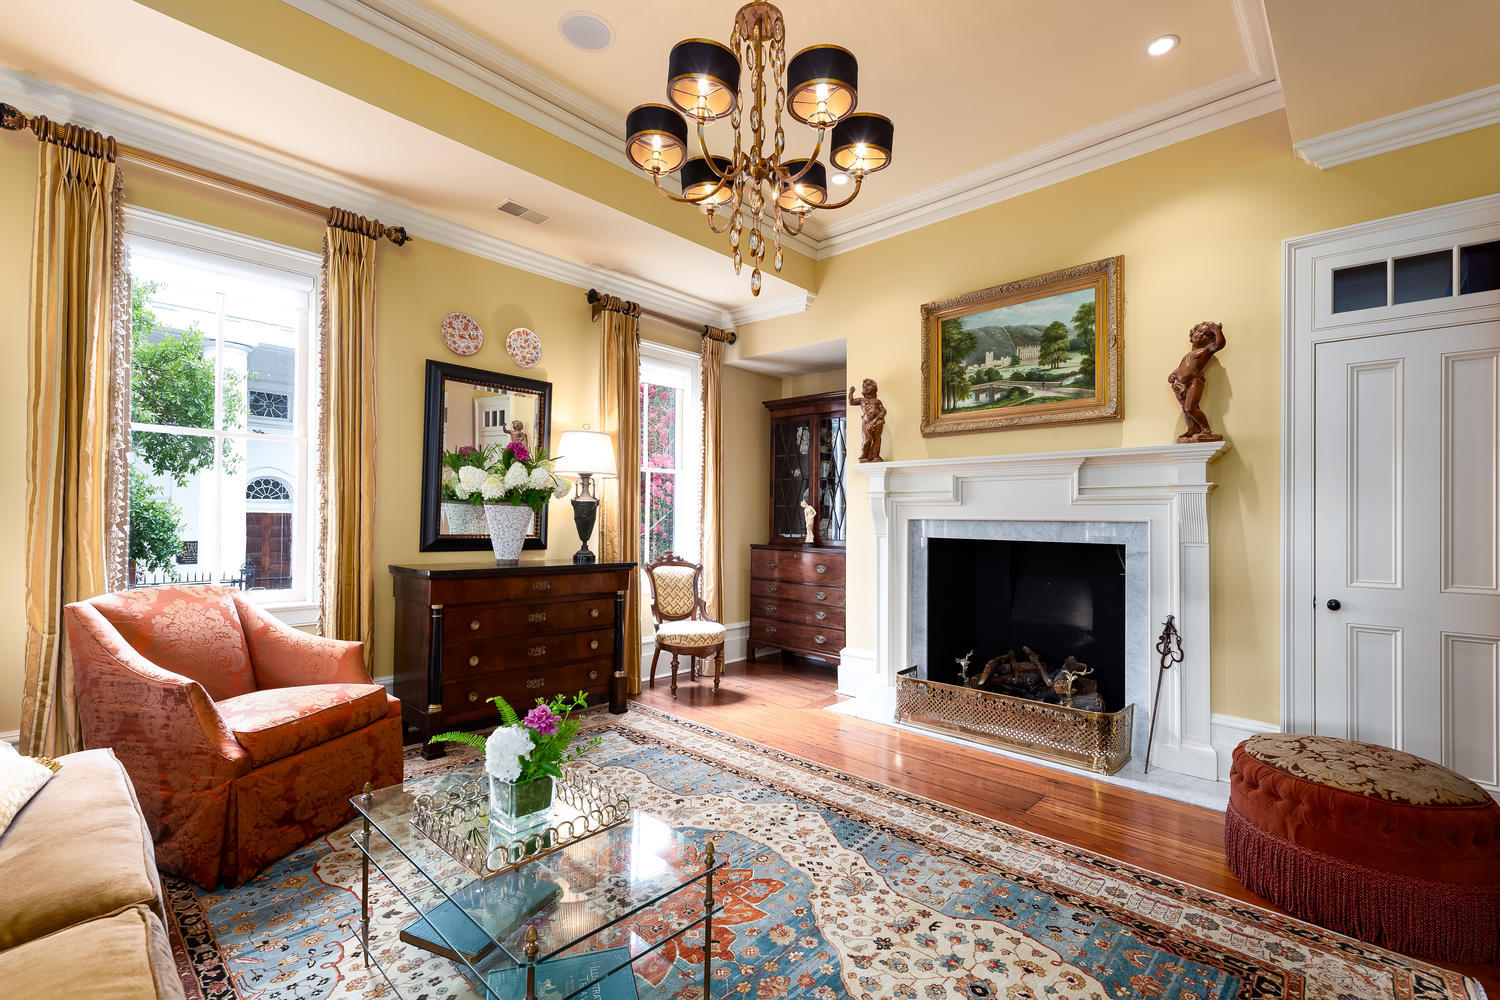 South of Broad Homes For Sale - 66 Church, Charleston, SC - 32